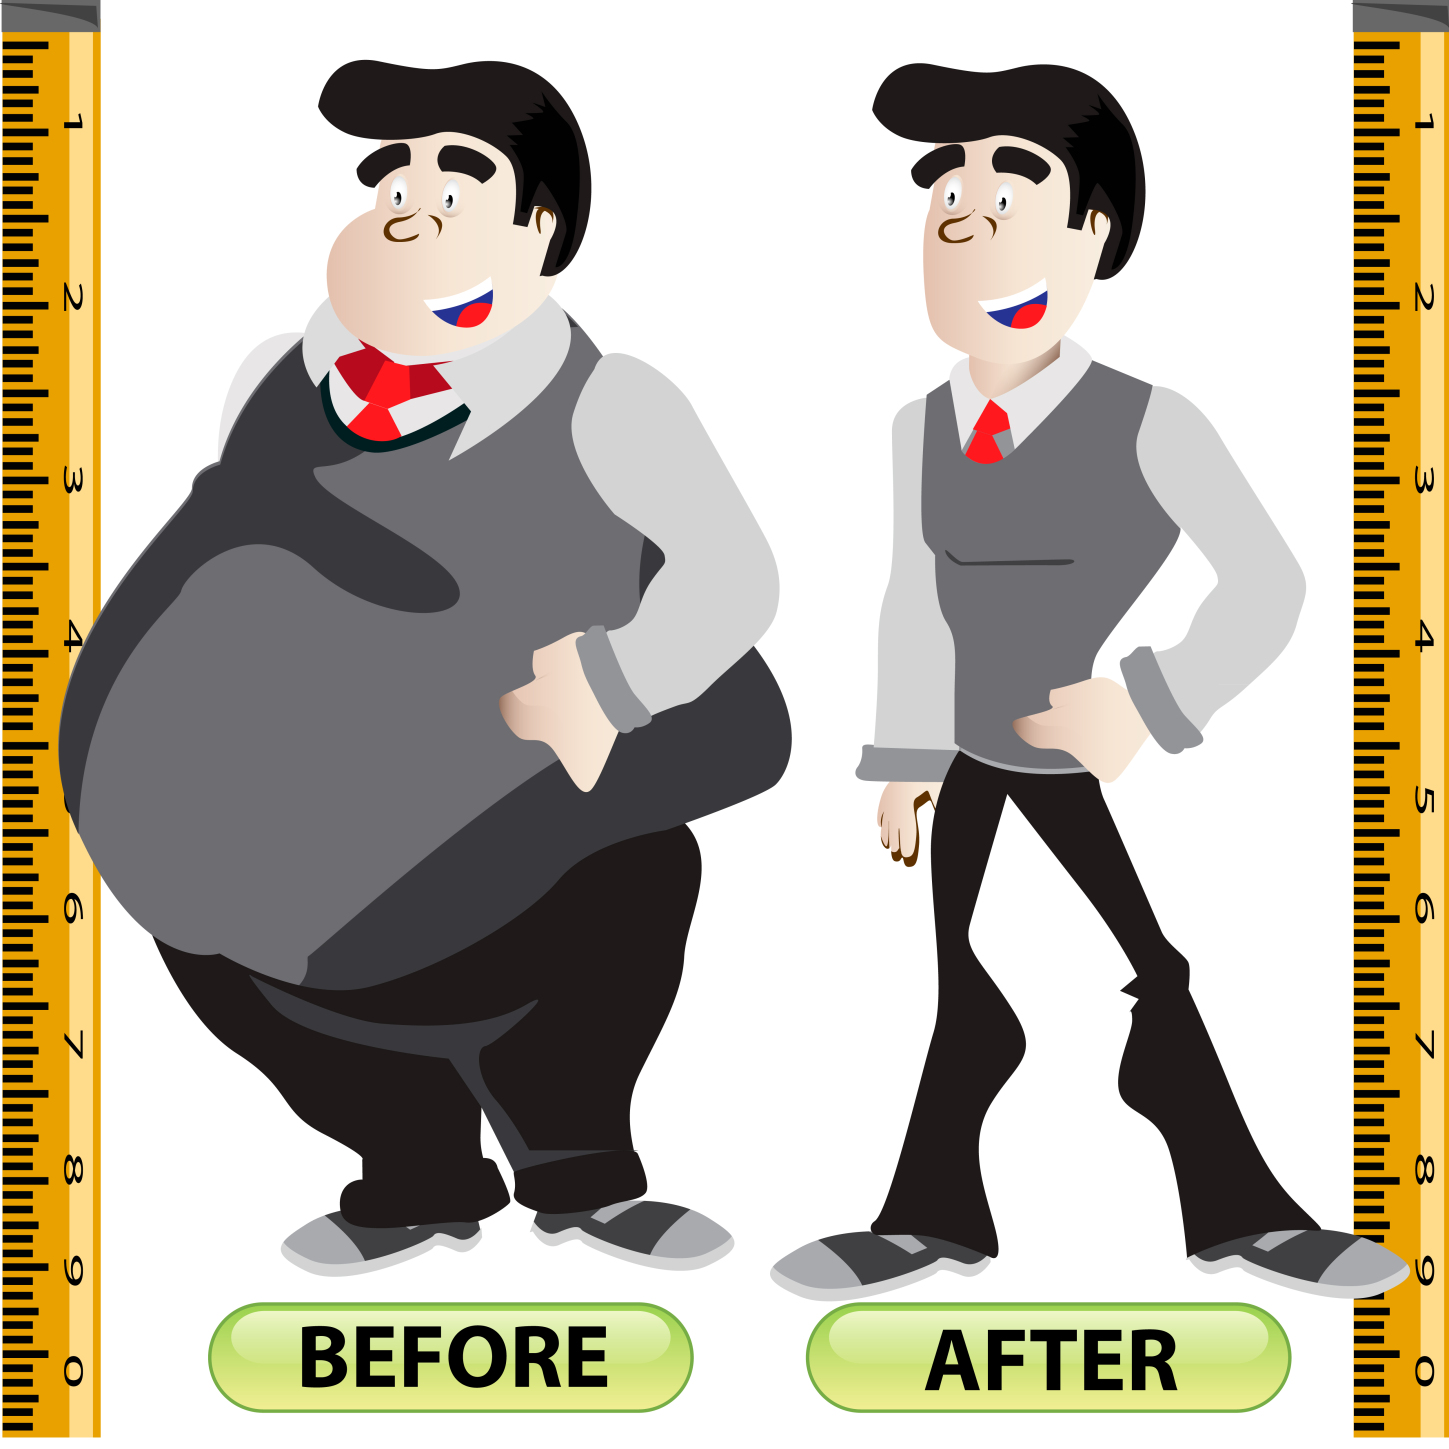 kozzi-853252-male_before_and_after_weigh